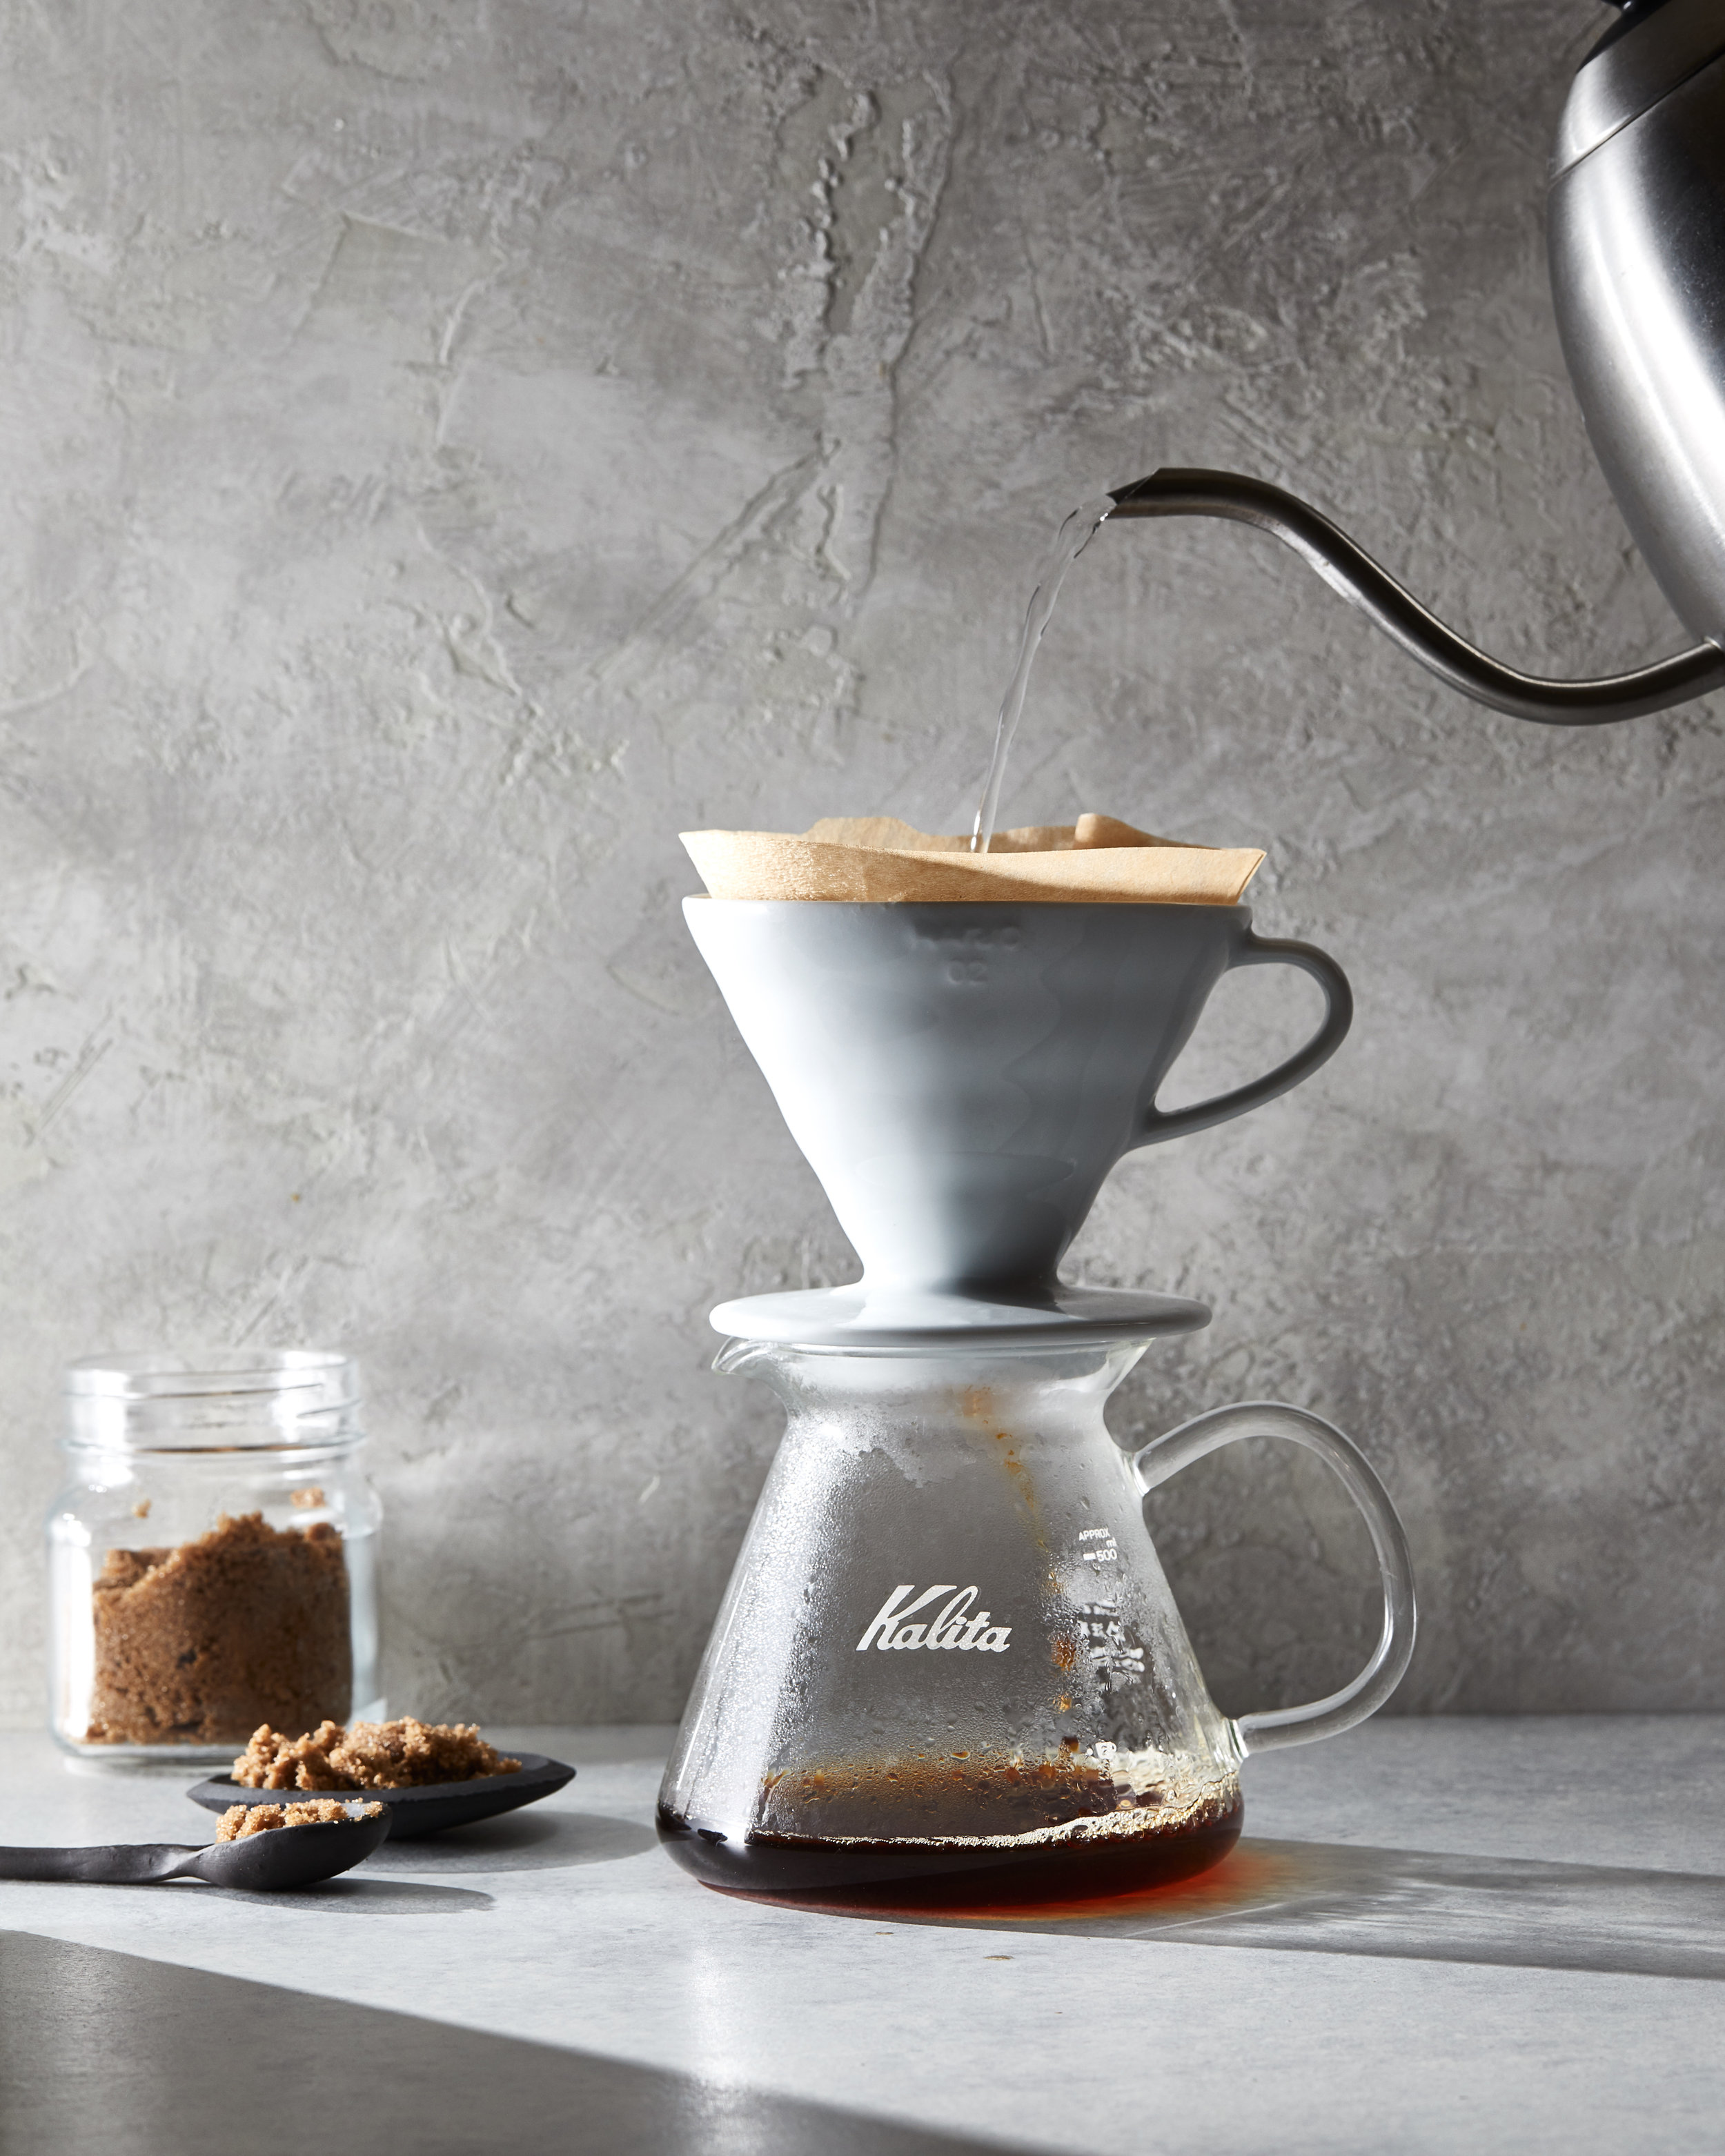 Pour-Over-Coffee-V60-Kalita-Los-Angeles-Food-Photographer-Brandon-Figueroa.jpg